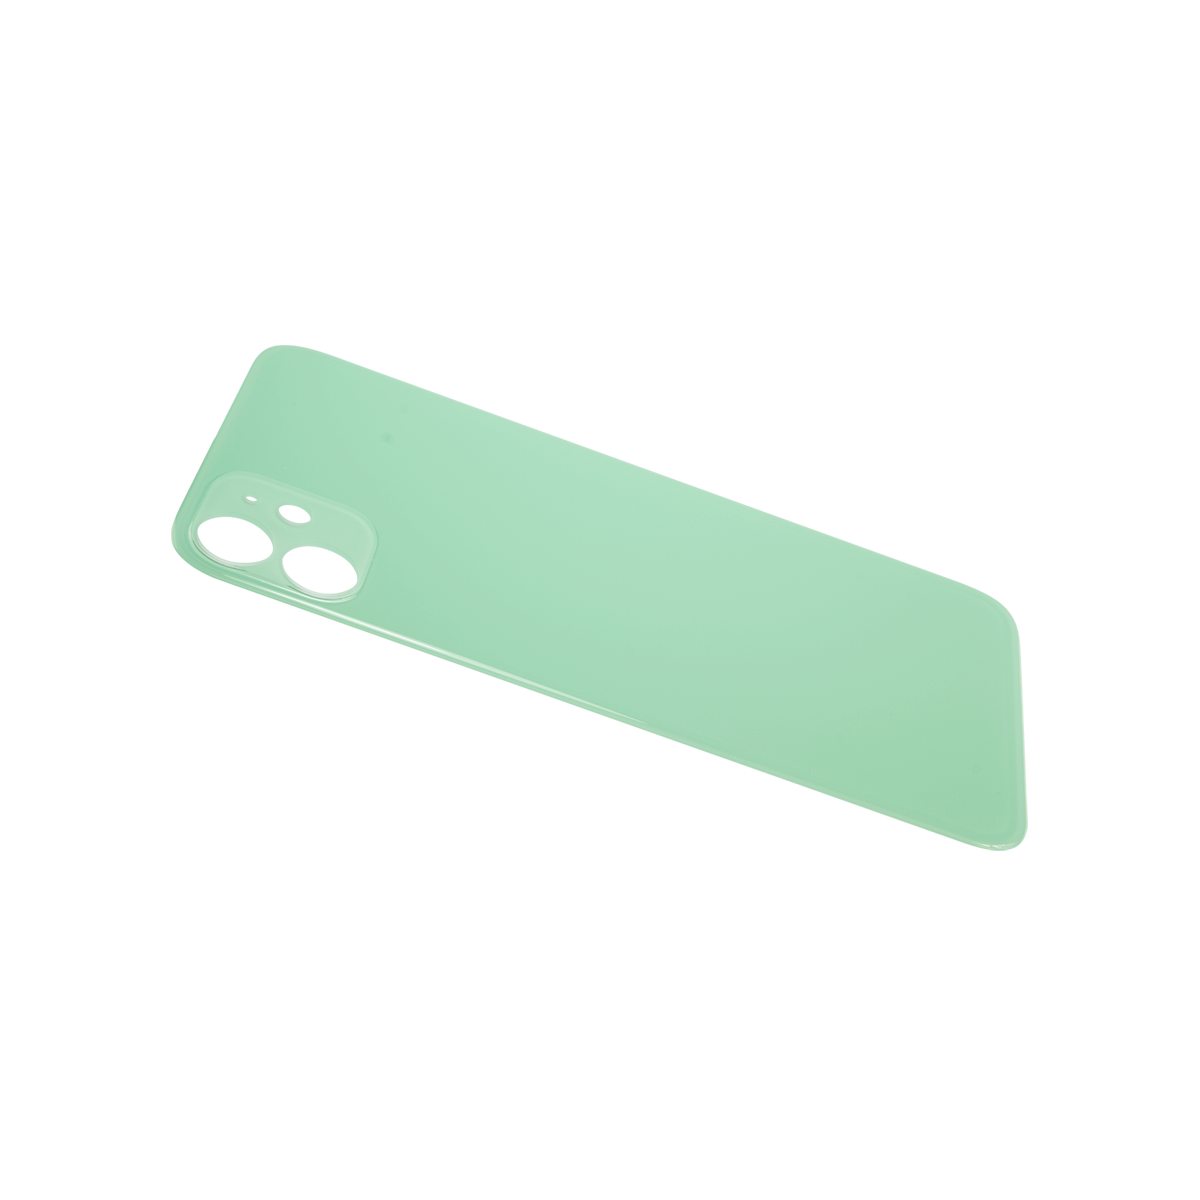 iPhone_11_Rear_Glass_Replacement_green_side_view_SBQODF7EUZO2.png